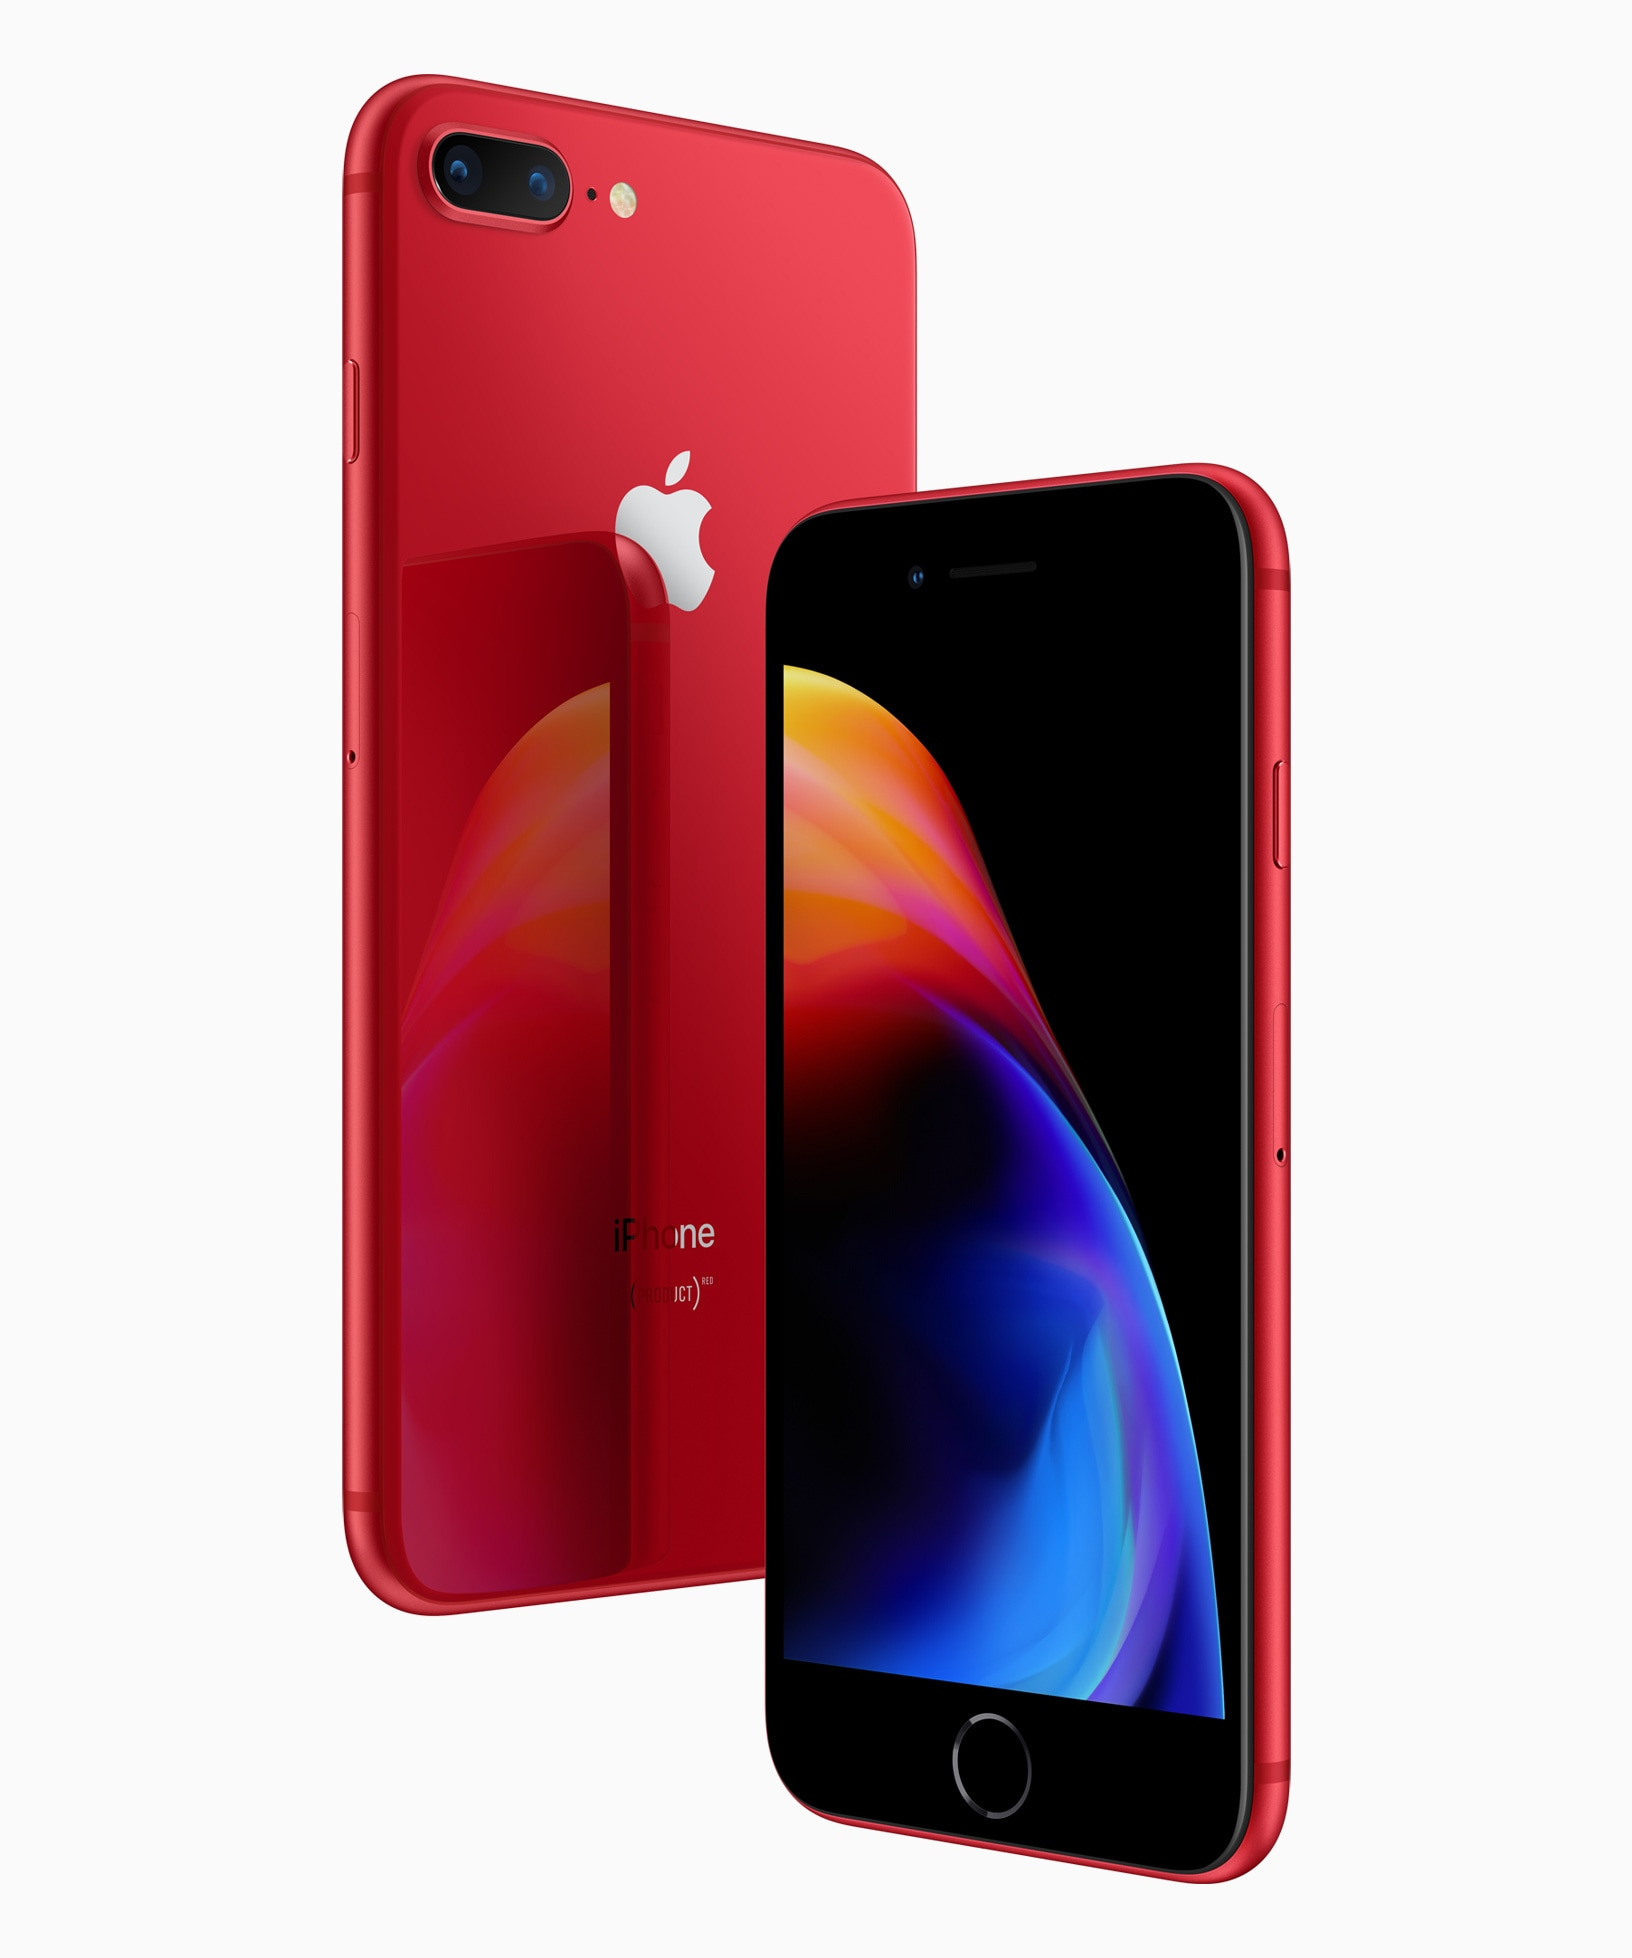 iPhone 8 (PRODUCT)RED Special Edition